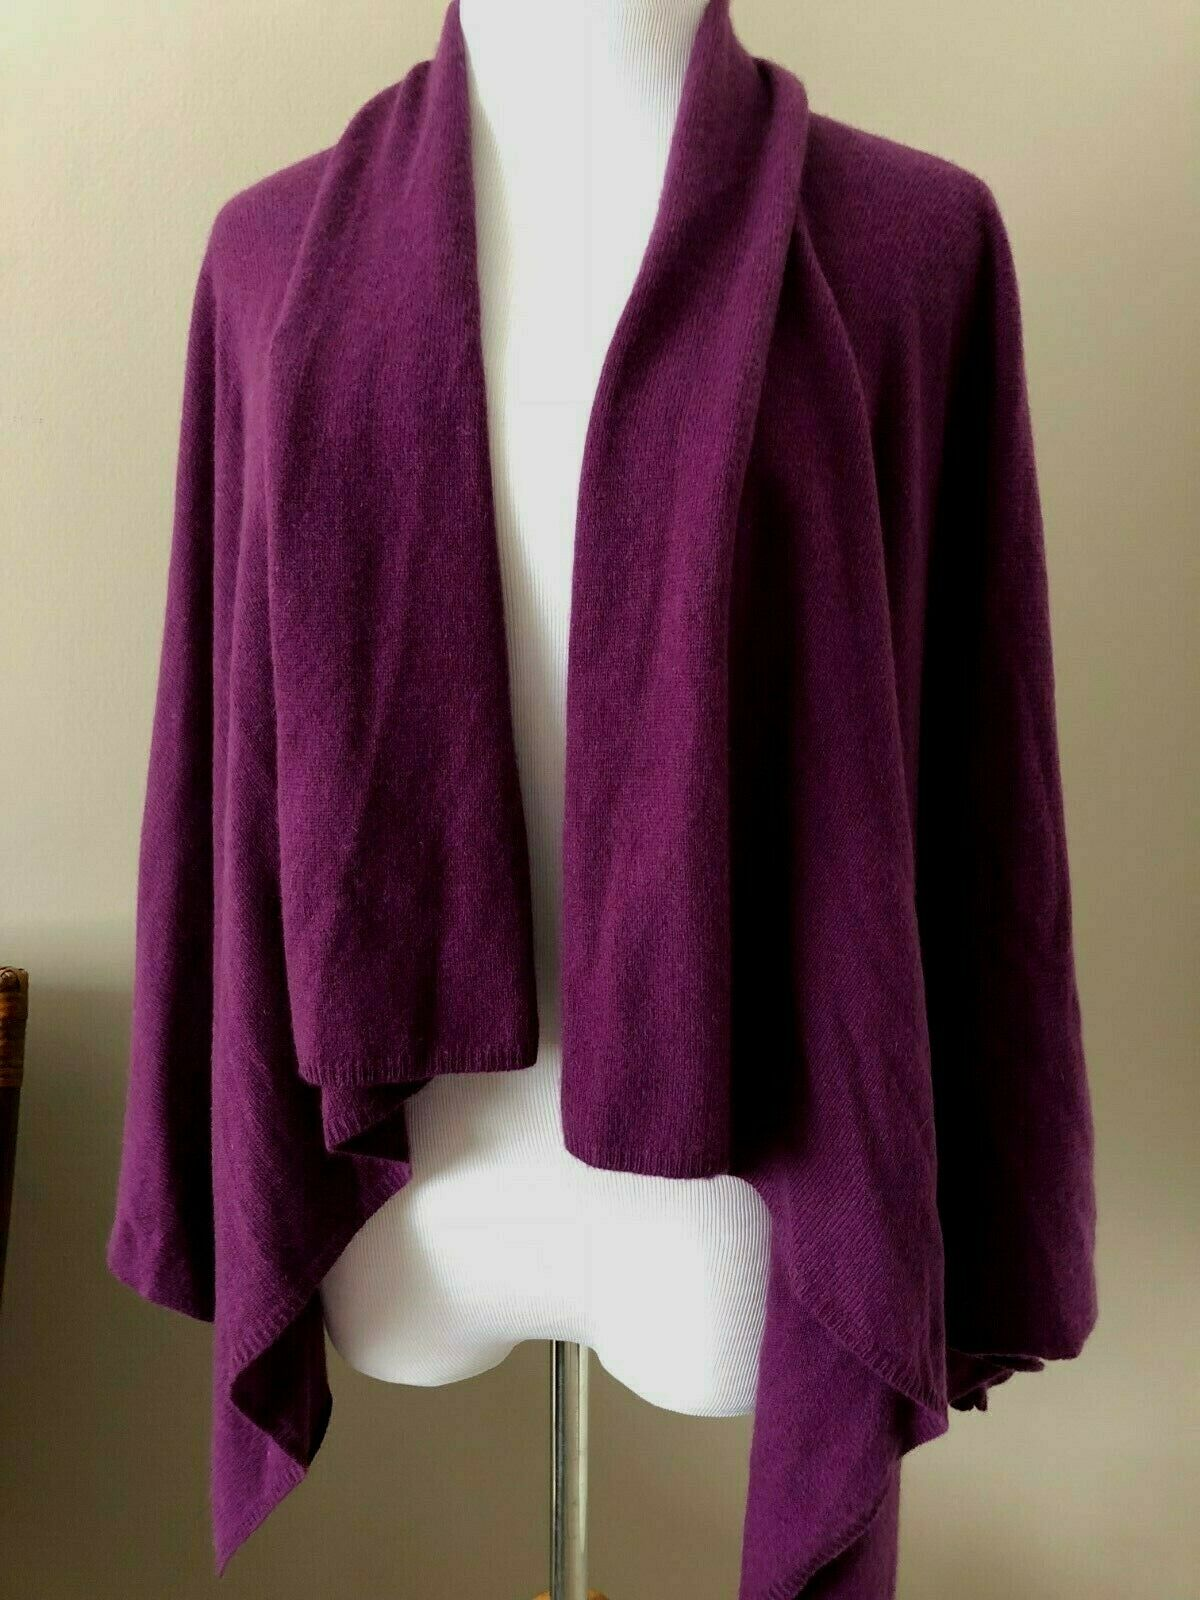 Immaculate Lord & Taylor Dark Grape 100% Cashmere Open-Front Cardigan Sweater PS